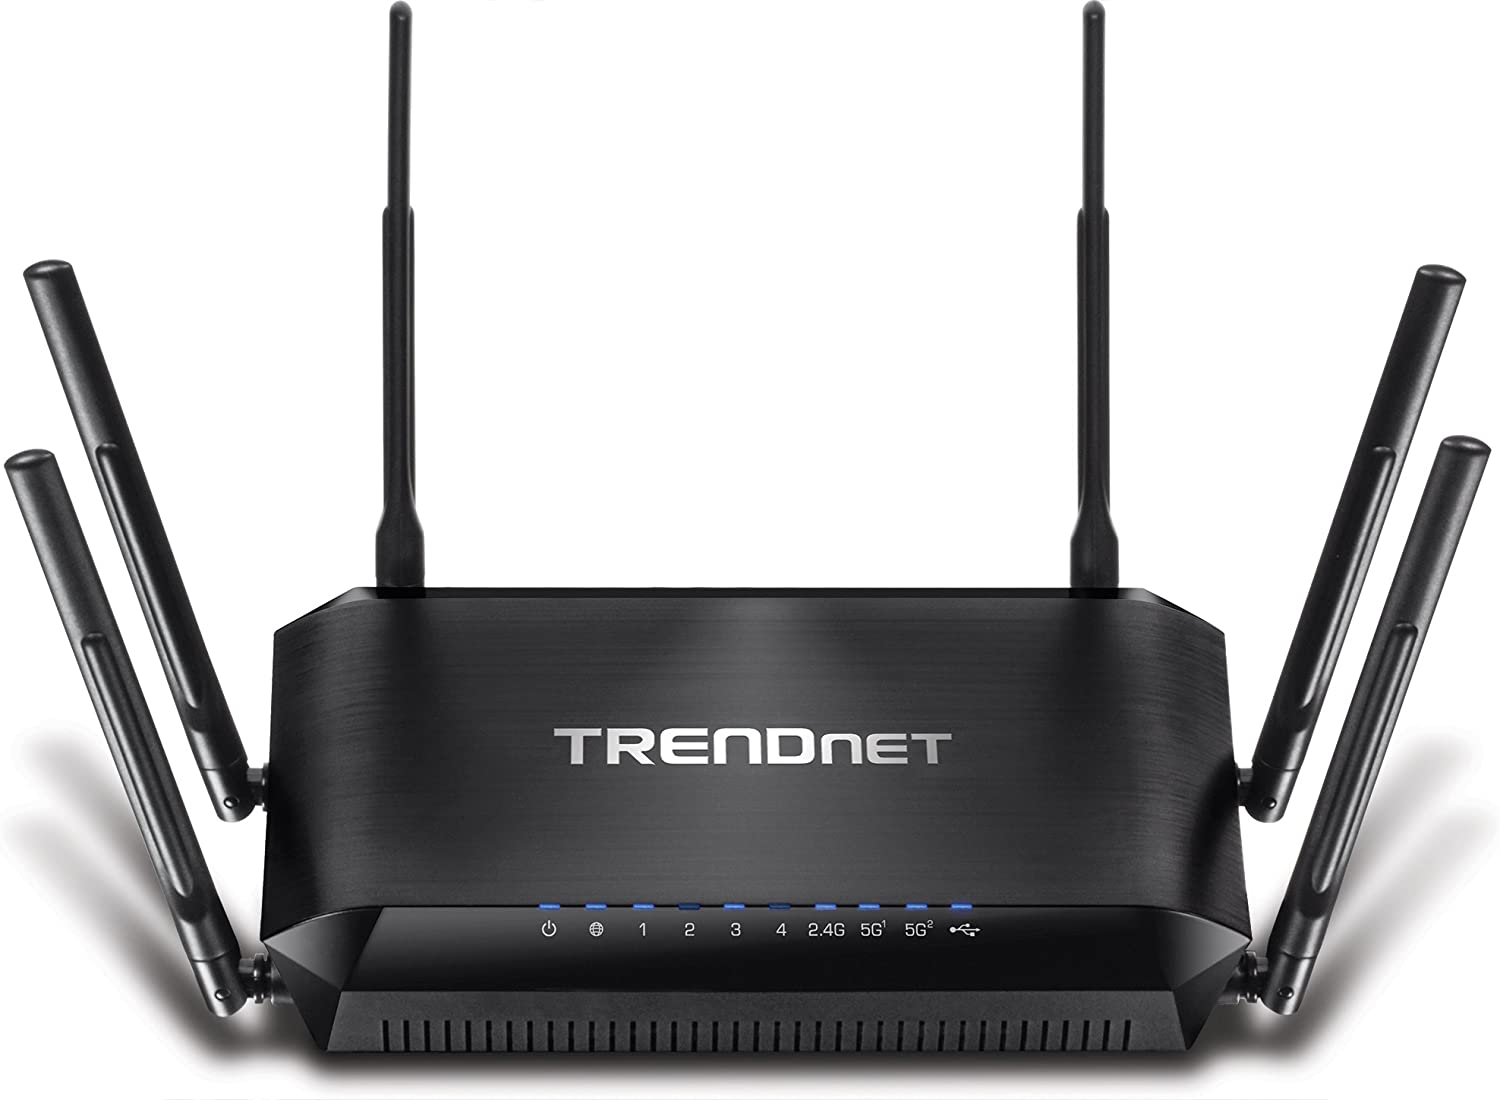 TEW-829DRU Pre-Encryped Wireless,QoS Wave 2 TRENDnet AC3000 Tri-Band Wireless Gigabit Dual-WAN VPN SMB Router Inter-VLAN Routing MU-MIMO Whole Office//Home WiFi Internet Router Router Limits